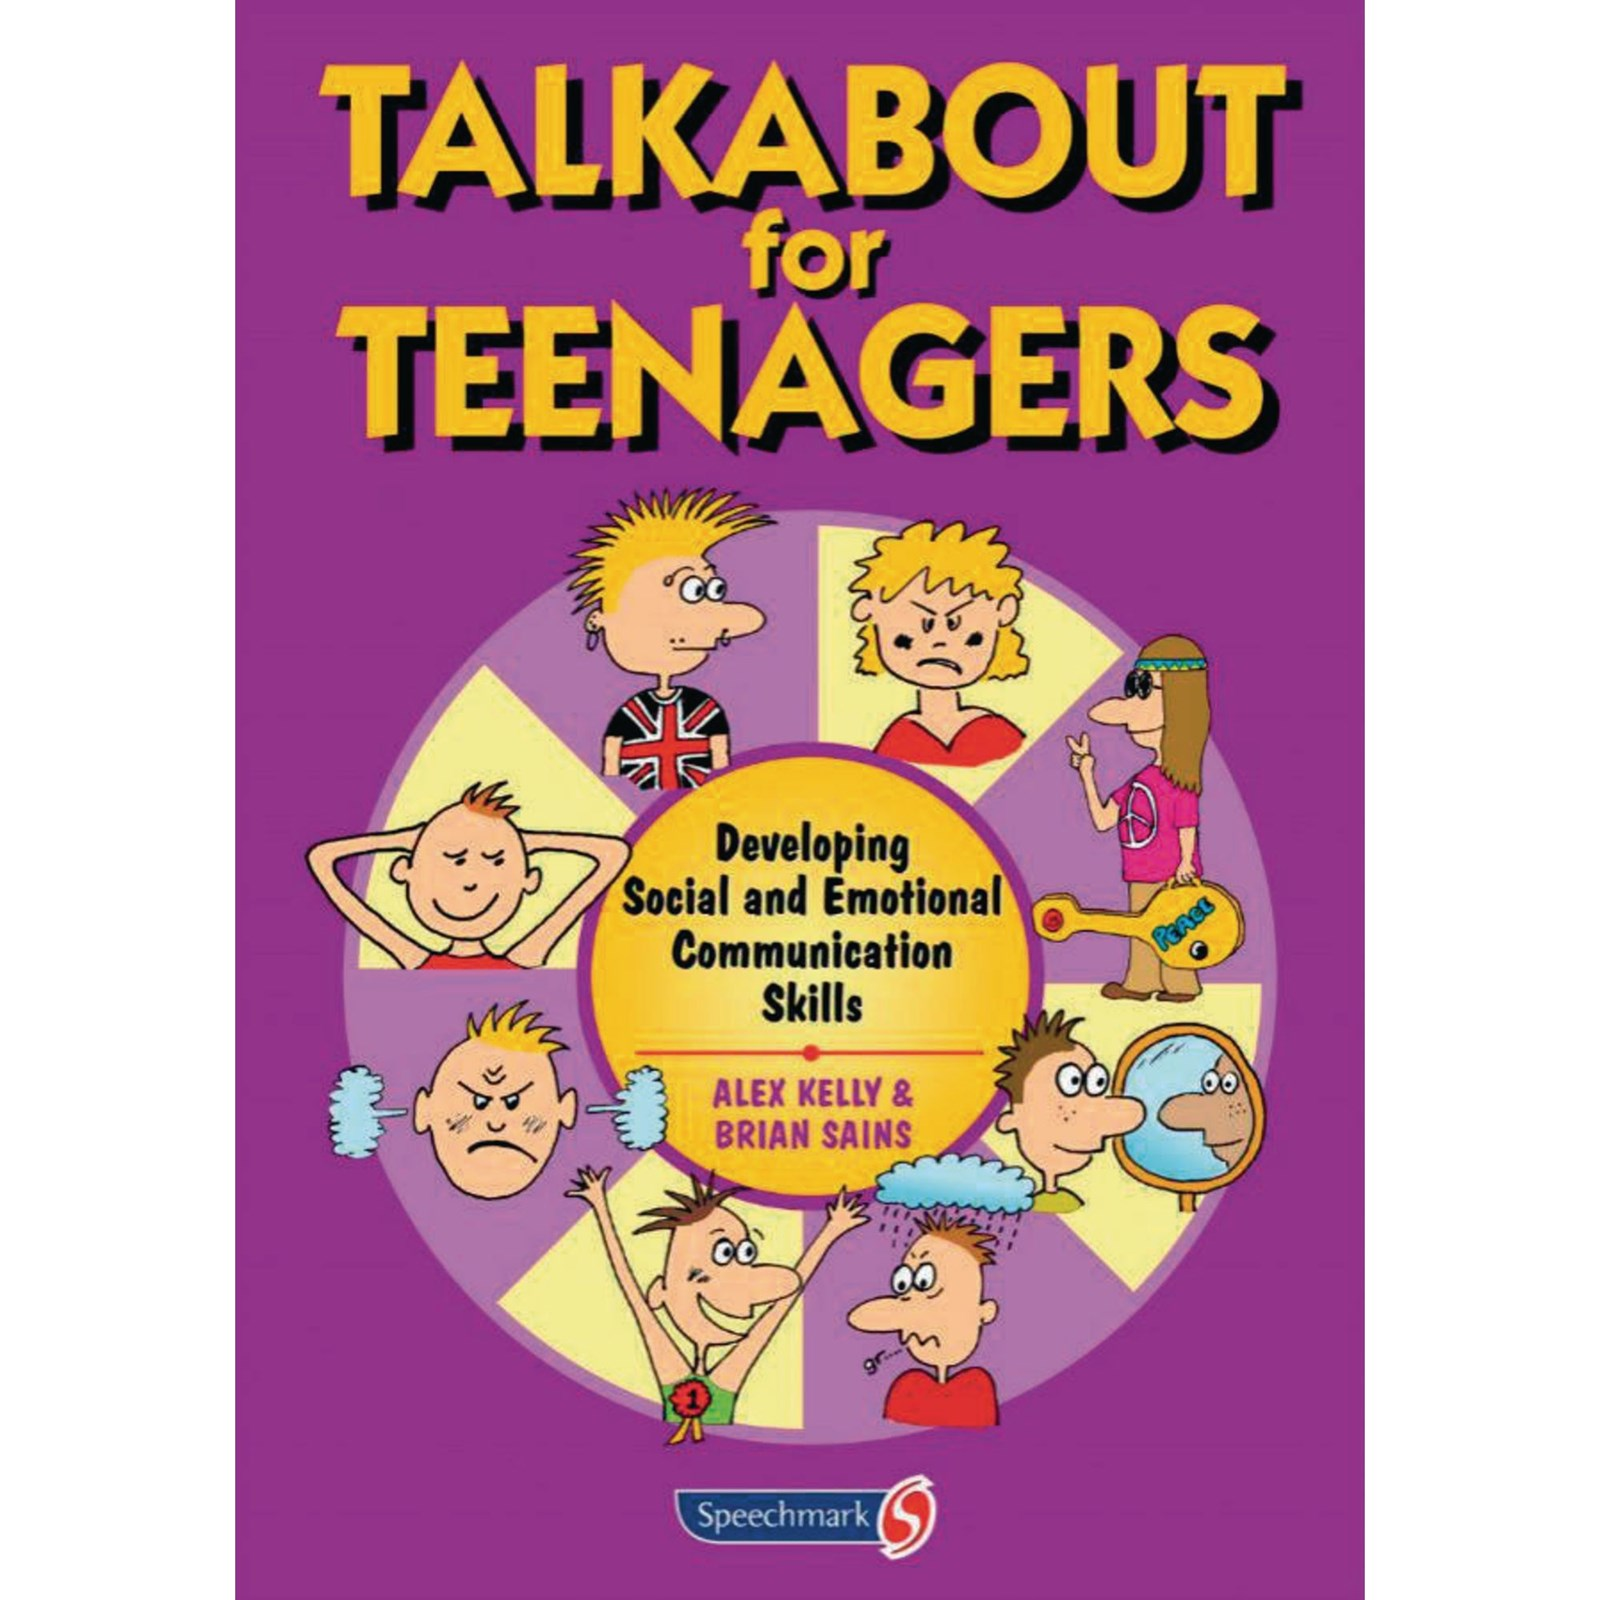 Talkabout for Teenagers